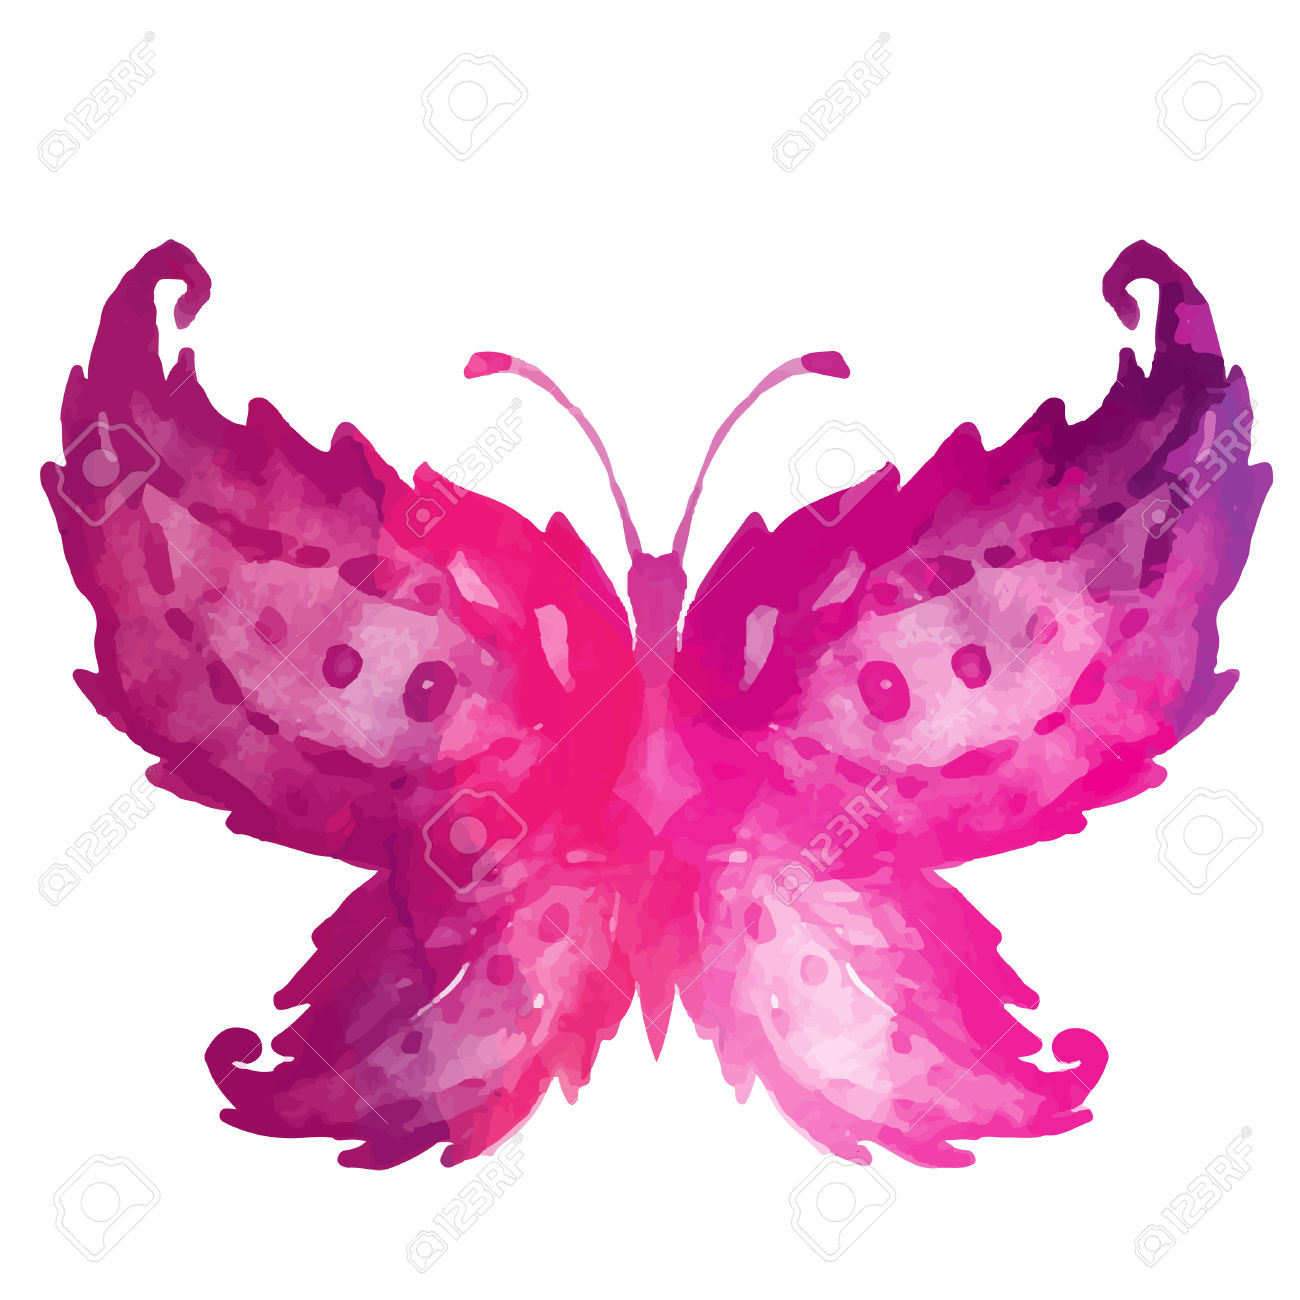 Watercolor butterfly free clipart clip royalty free Amazing Watercolor Butterfly. Vector Art Isolated On White Royalty ... clip royalty free